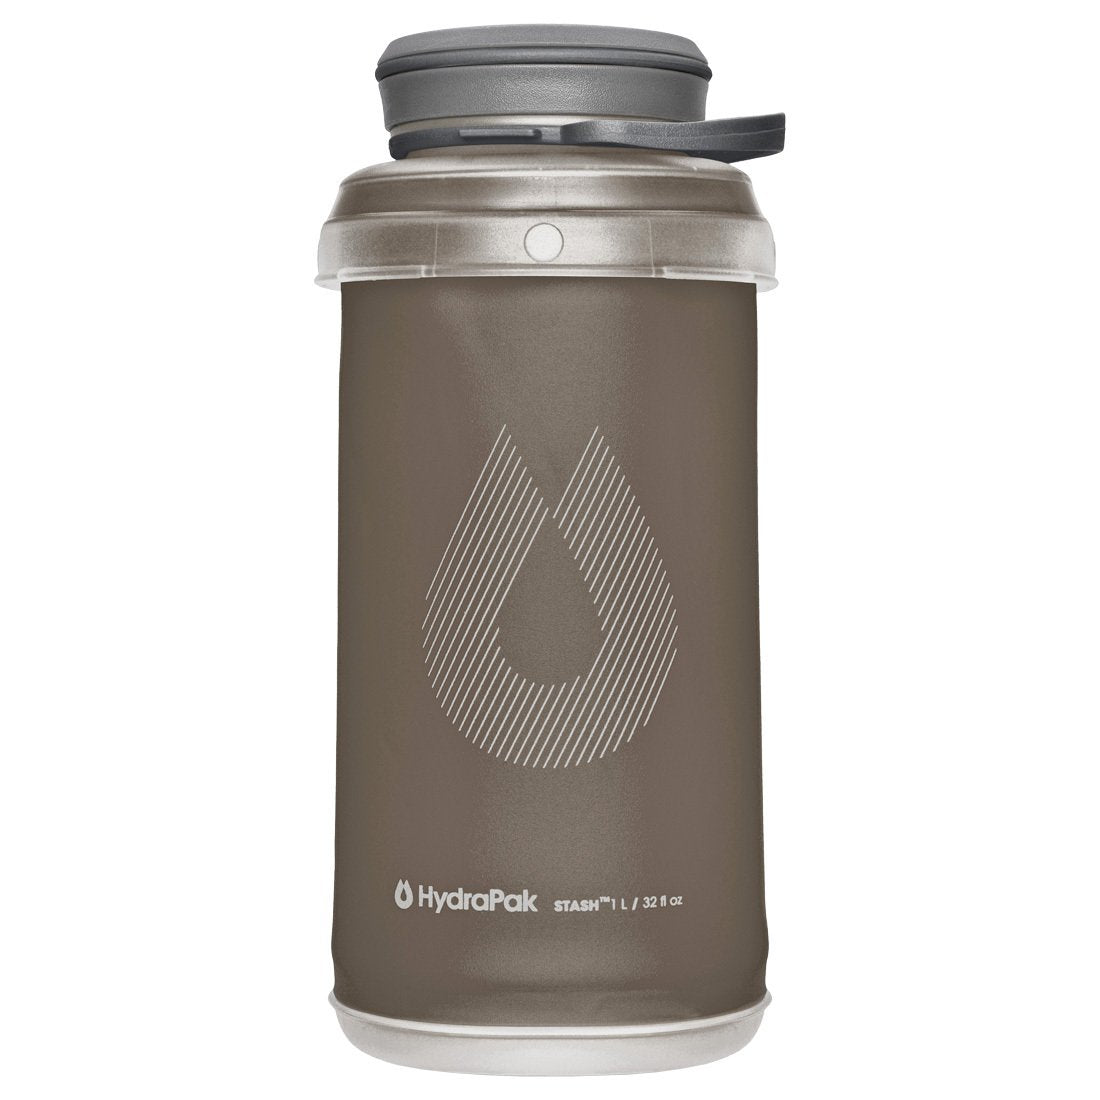 Hydrapak Stash 1 Litre bottle, in grey colour with grey lid